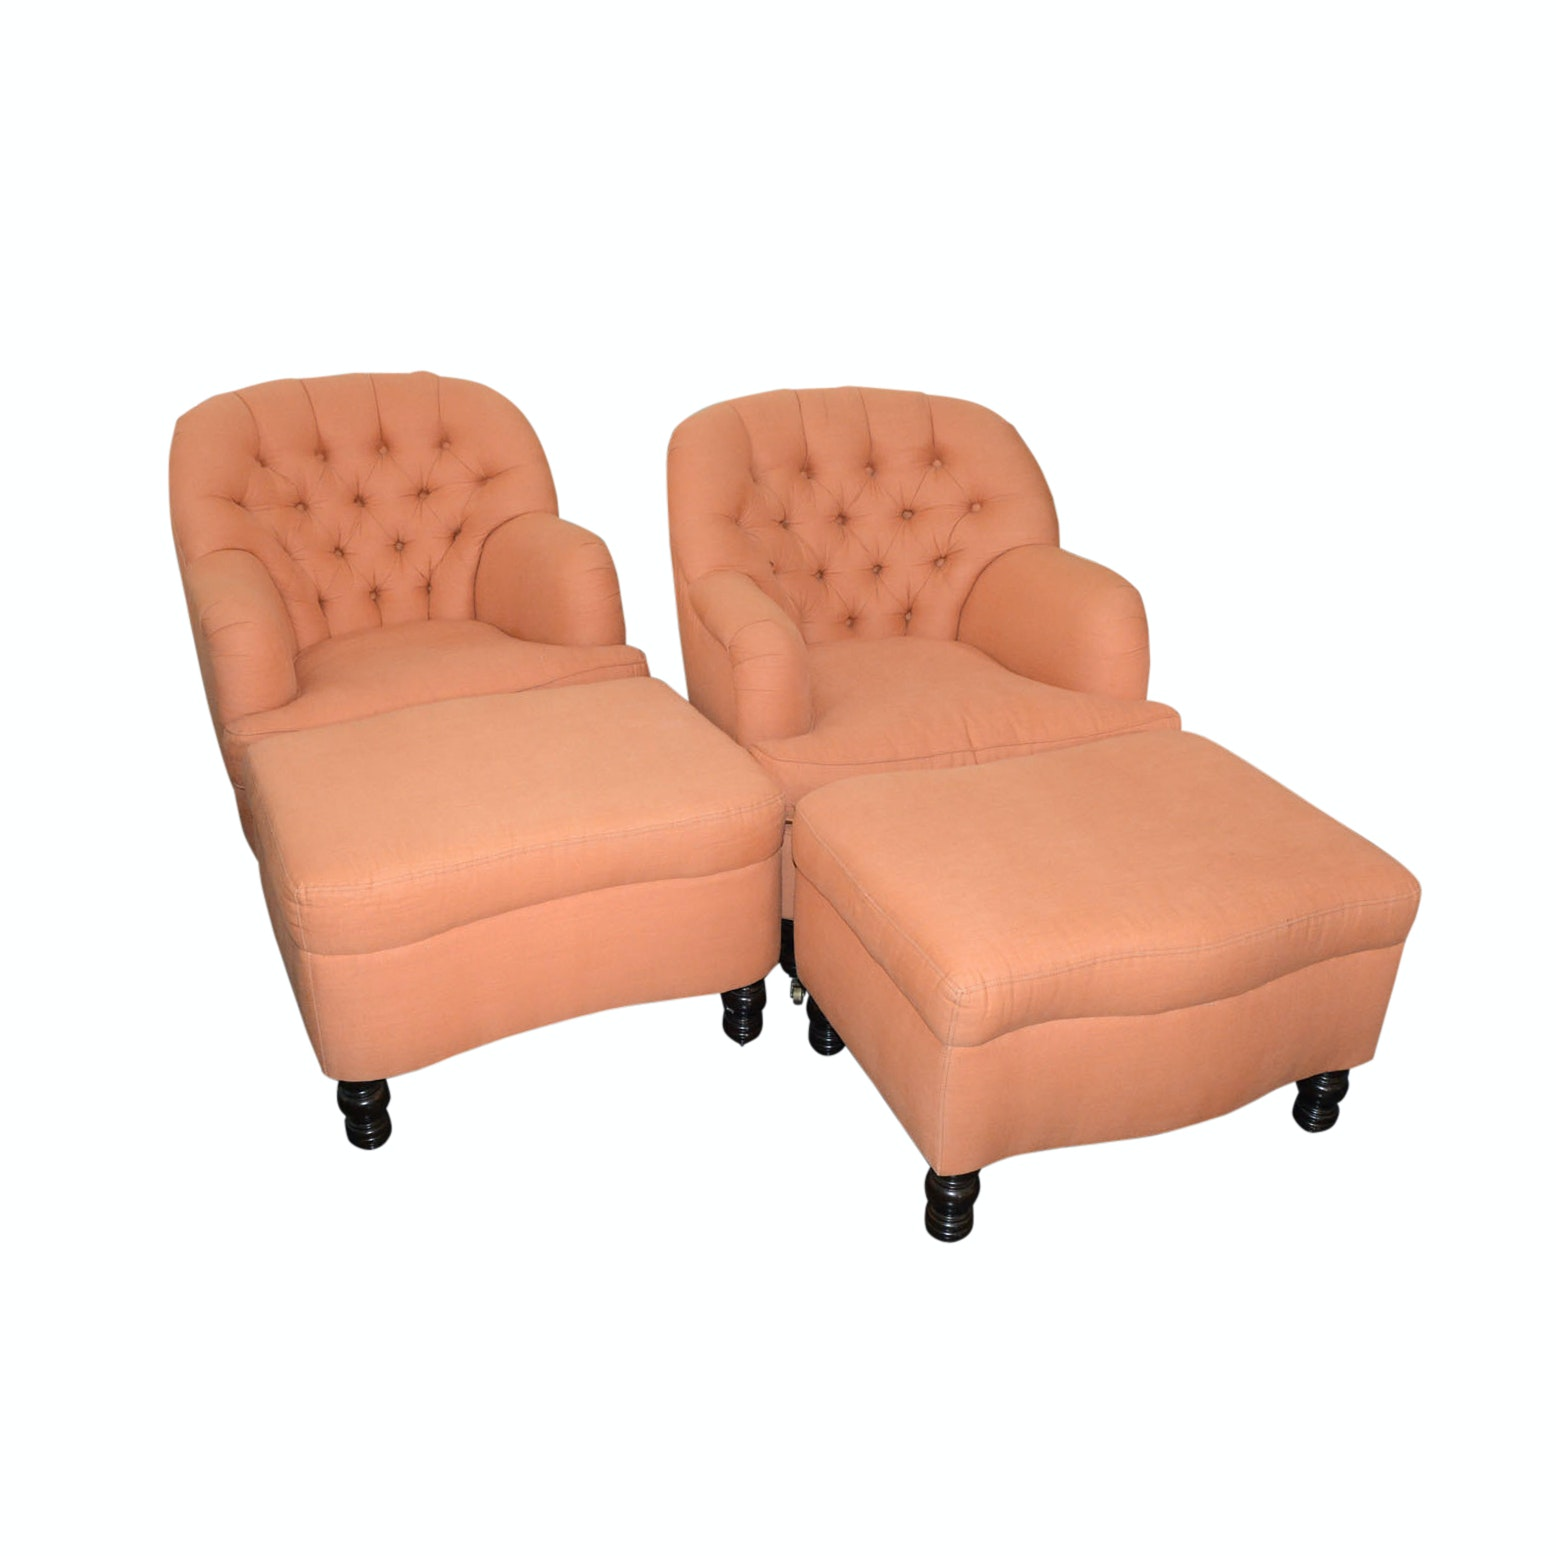 Pair of Lounge Chairs with Ottomans by Cisco Brothers